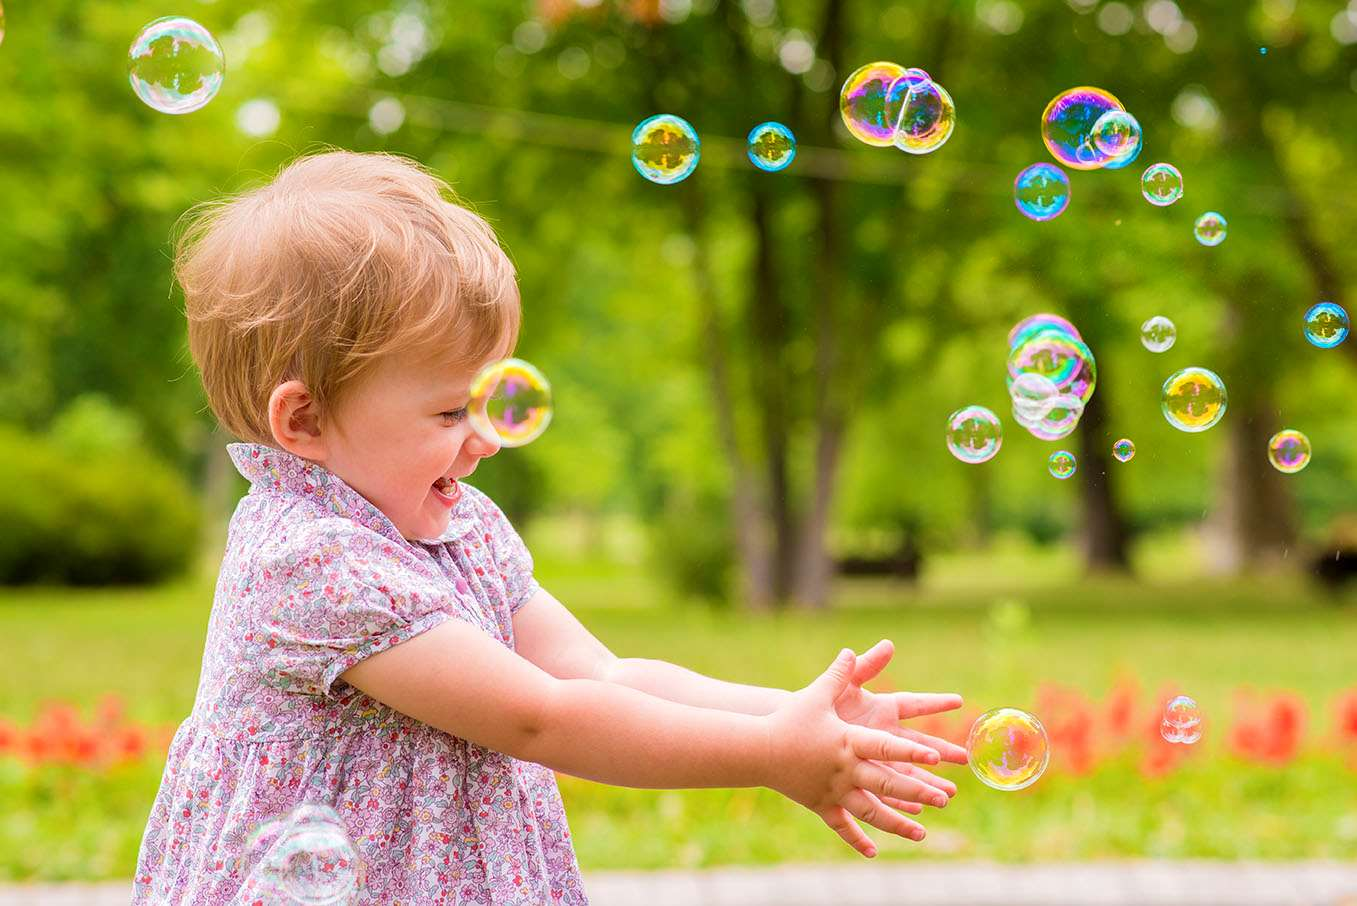 Young girl with bubbles